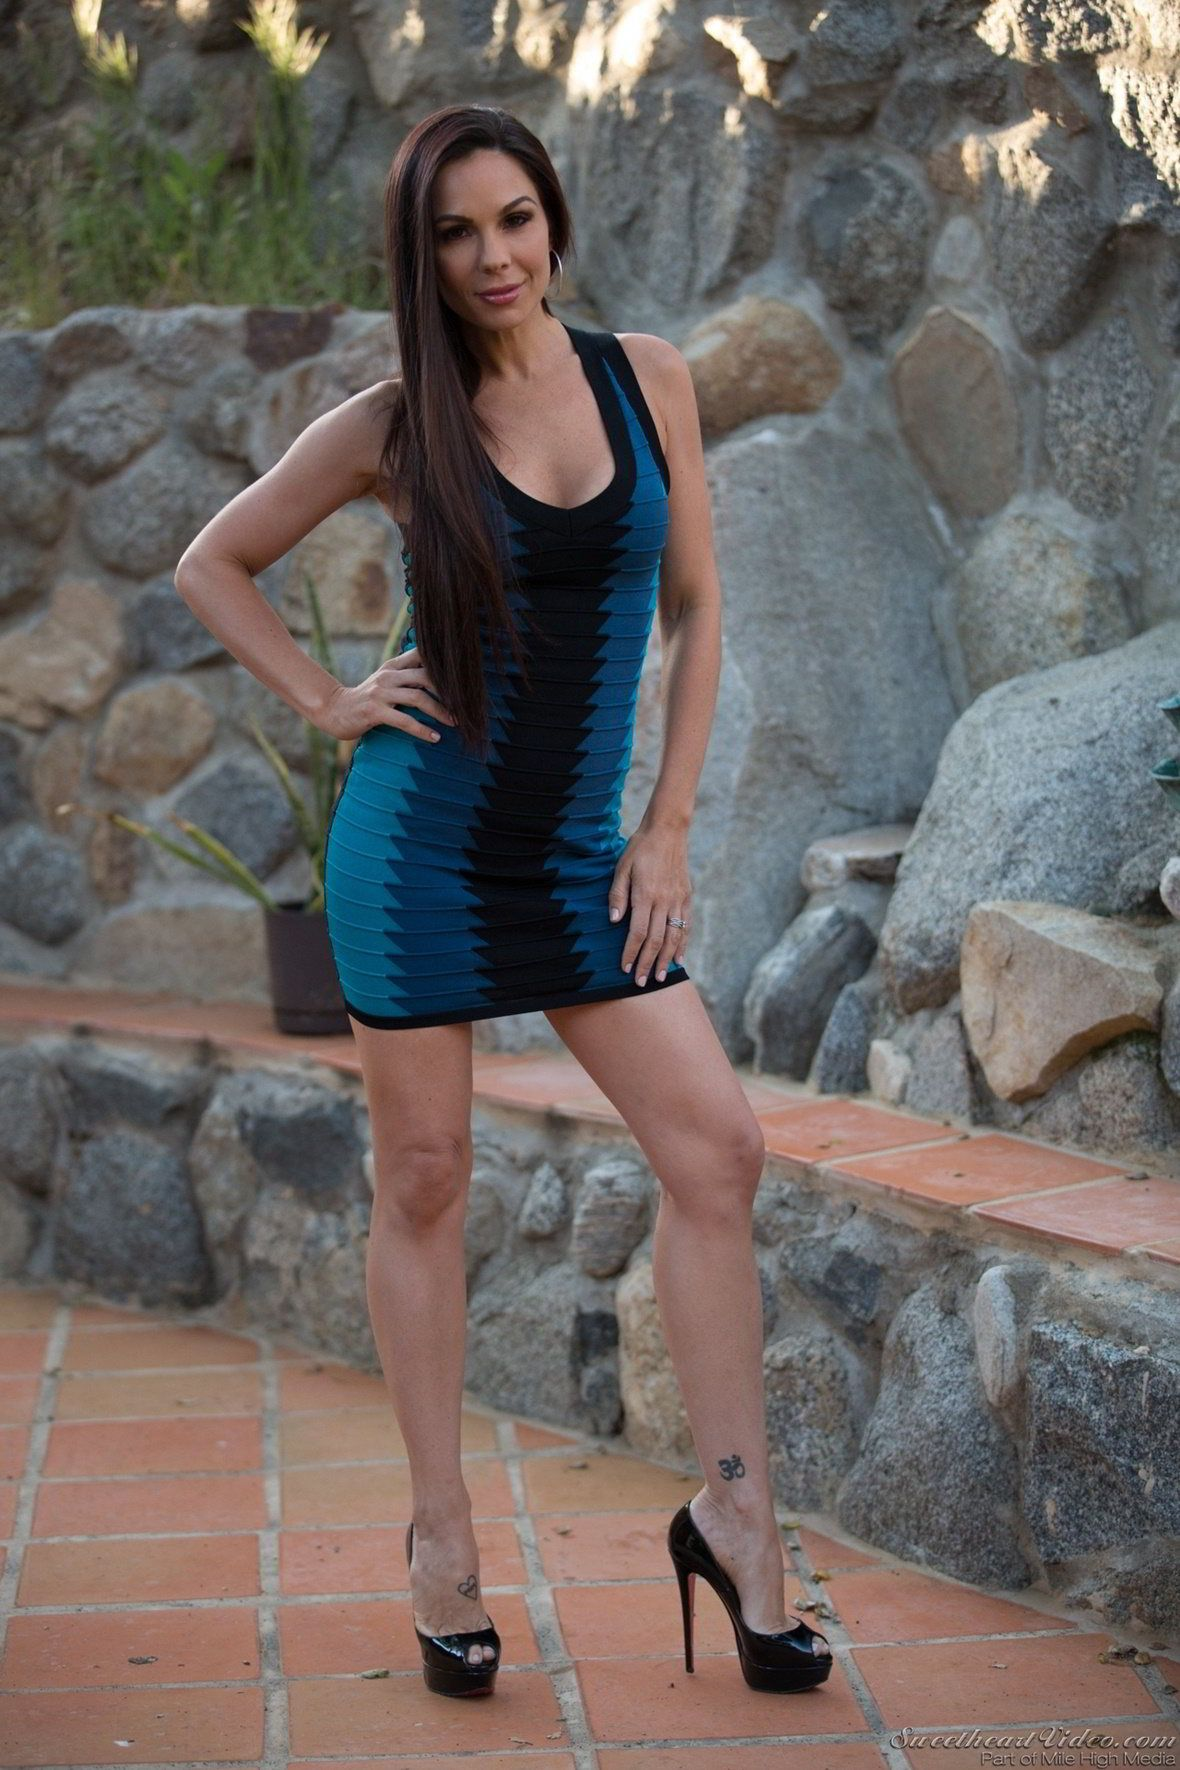 Kirsten Price (actress) Kirsten Price (actress) new images